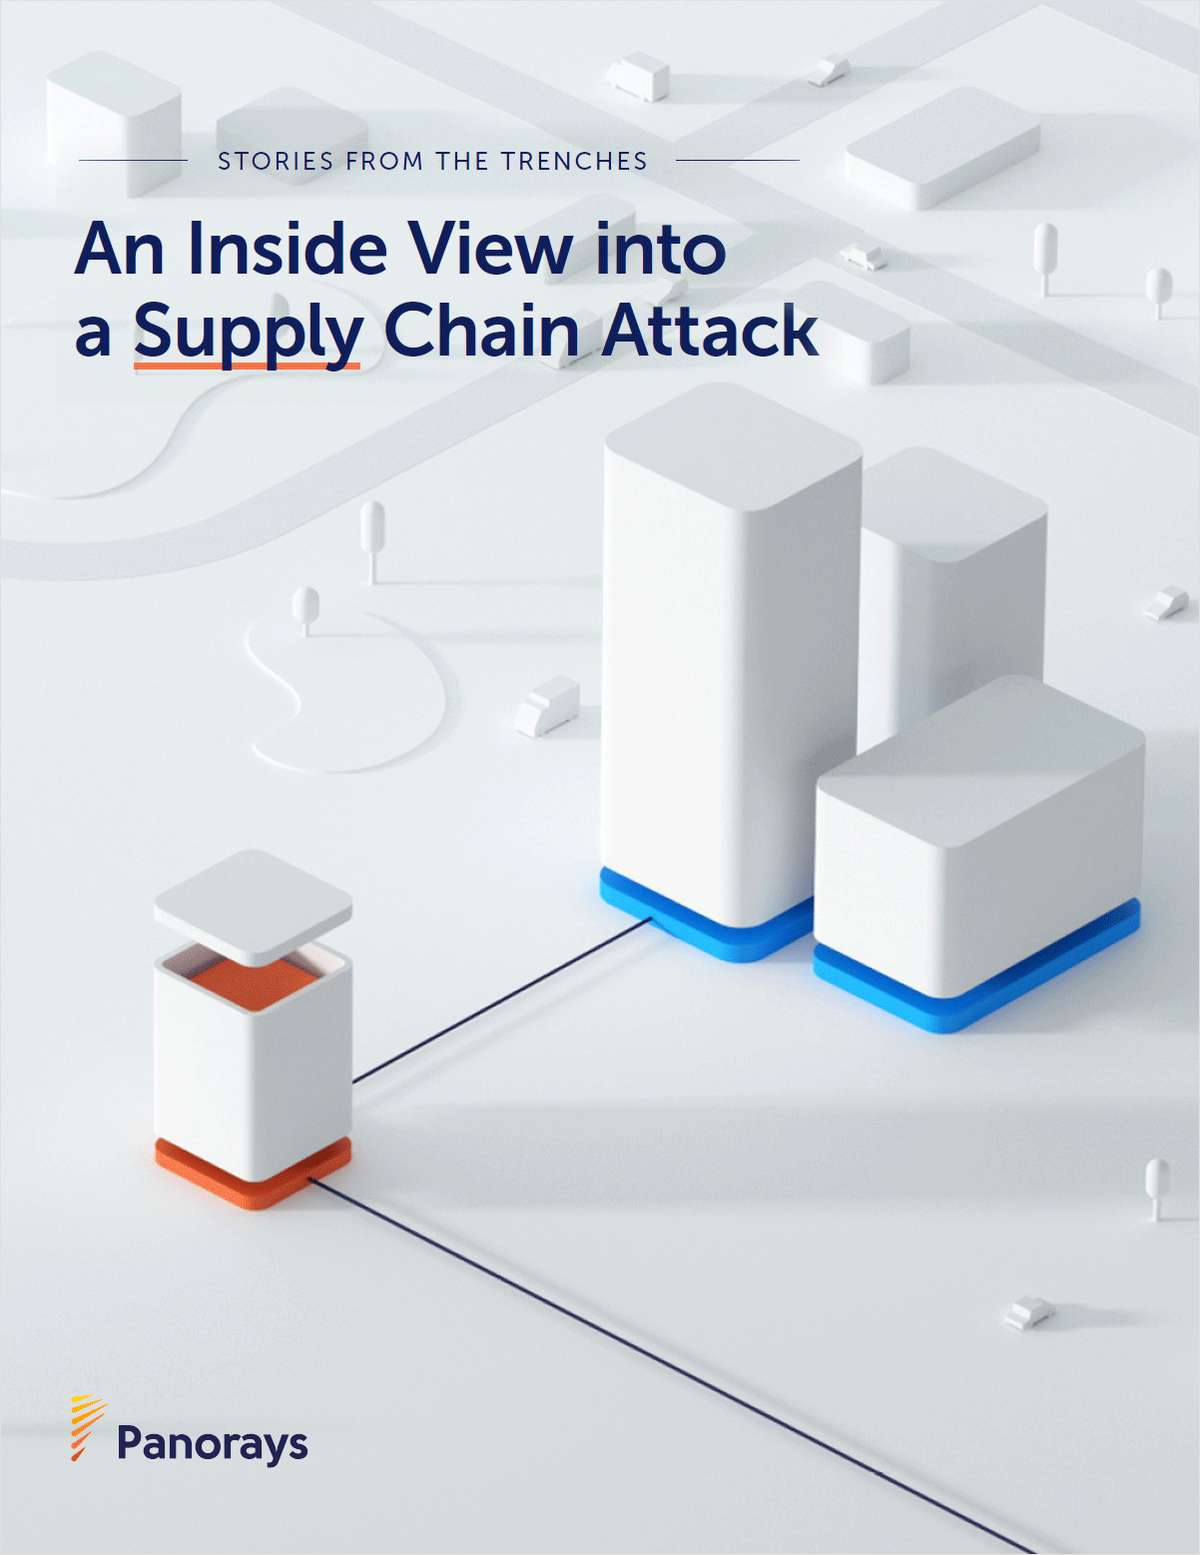 An Insider's View into a Supply Chain Attack